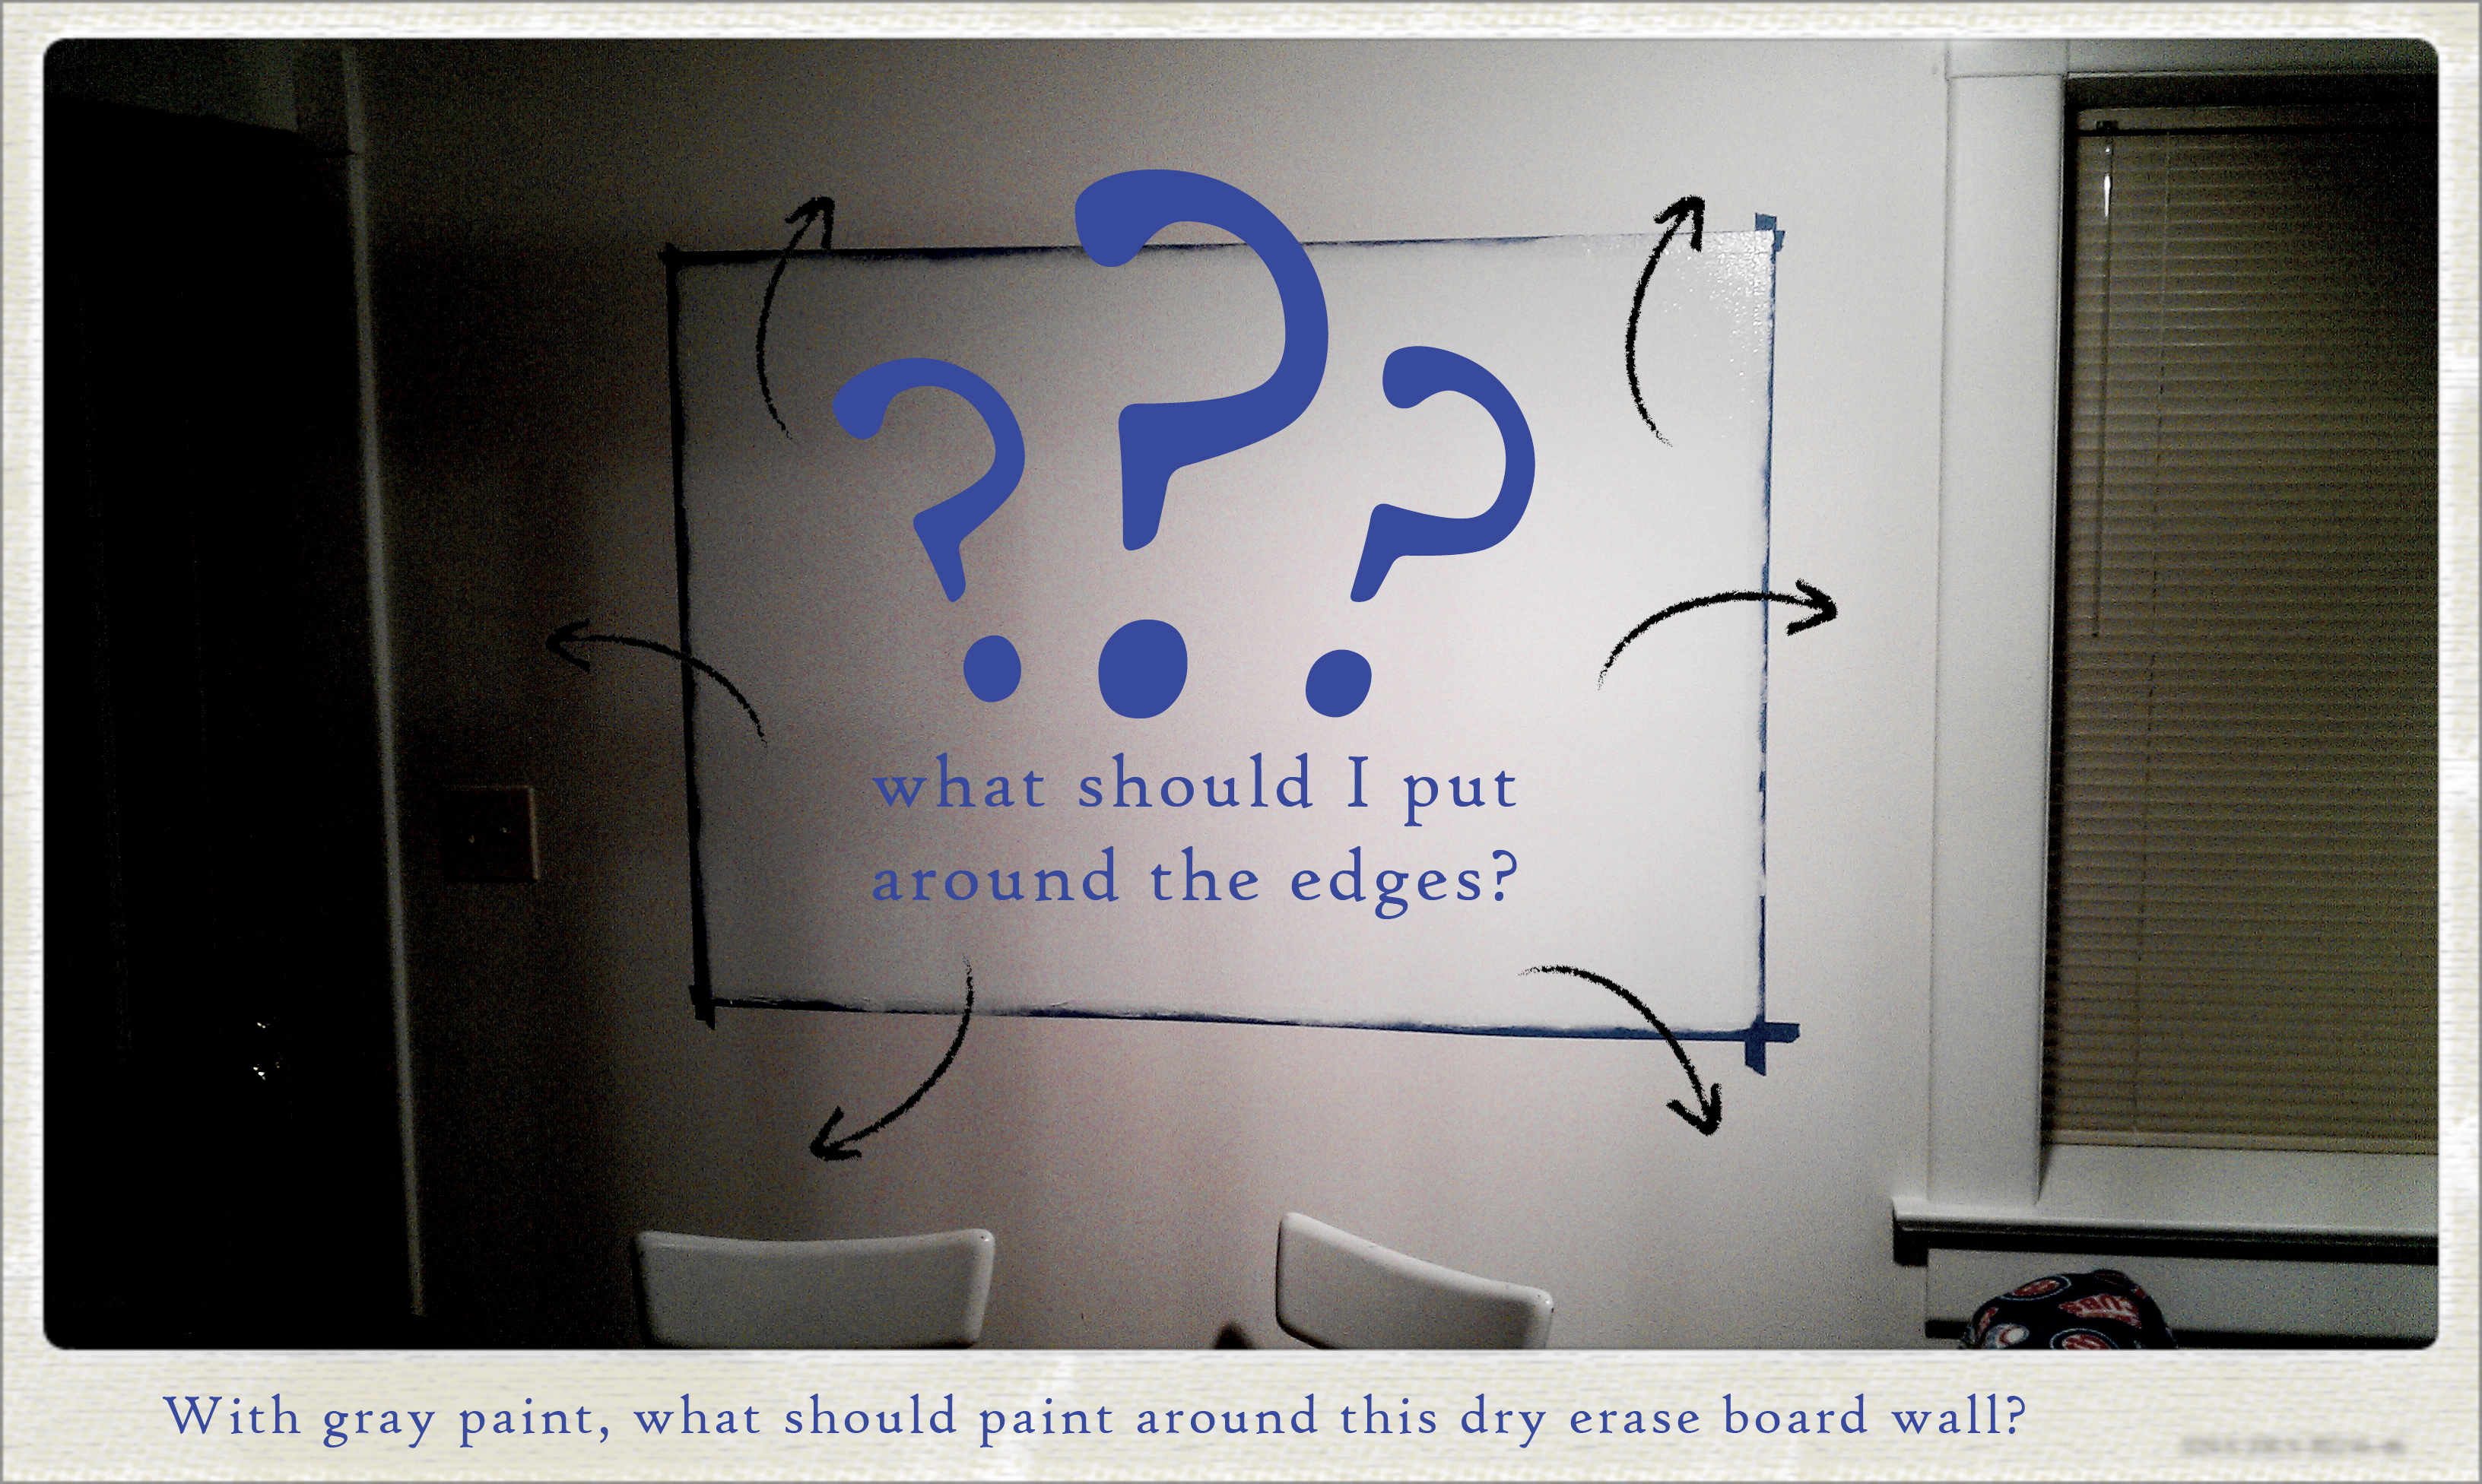 Design Ideas for the Border to My Dry Erase Board Wall – NATE SCHRADER